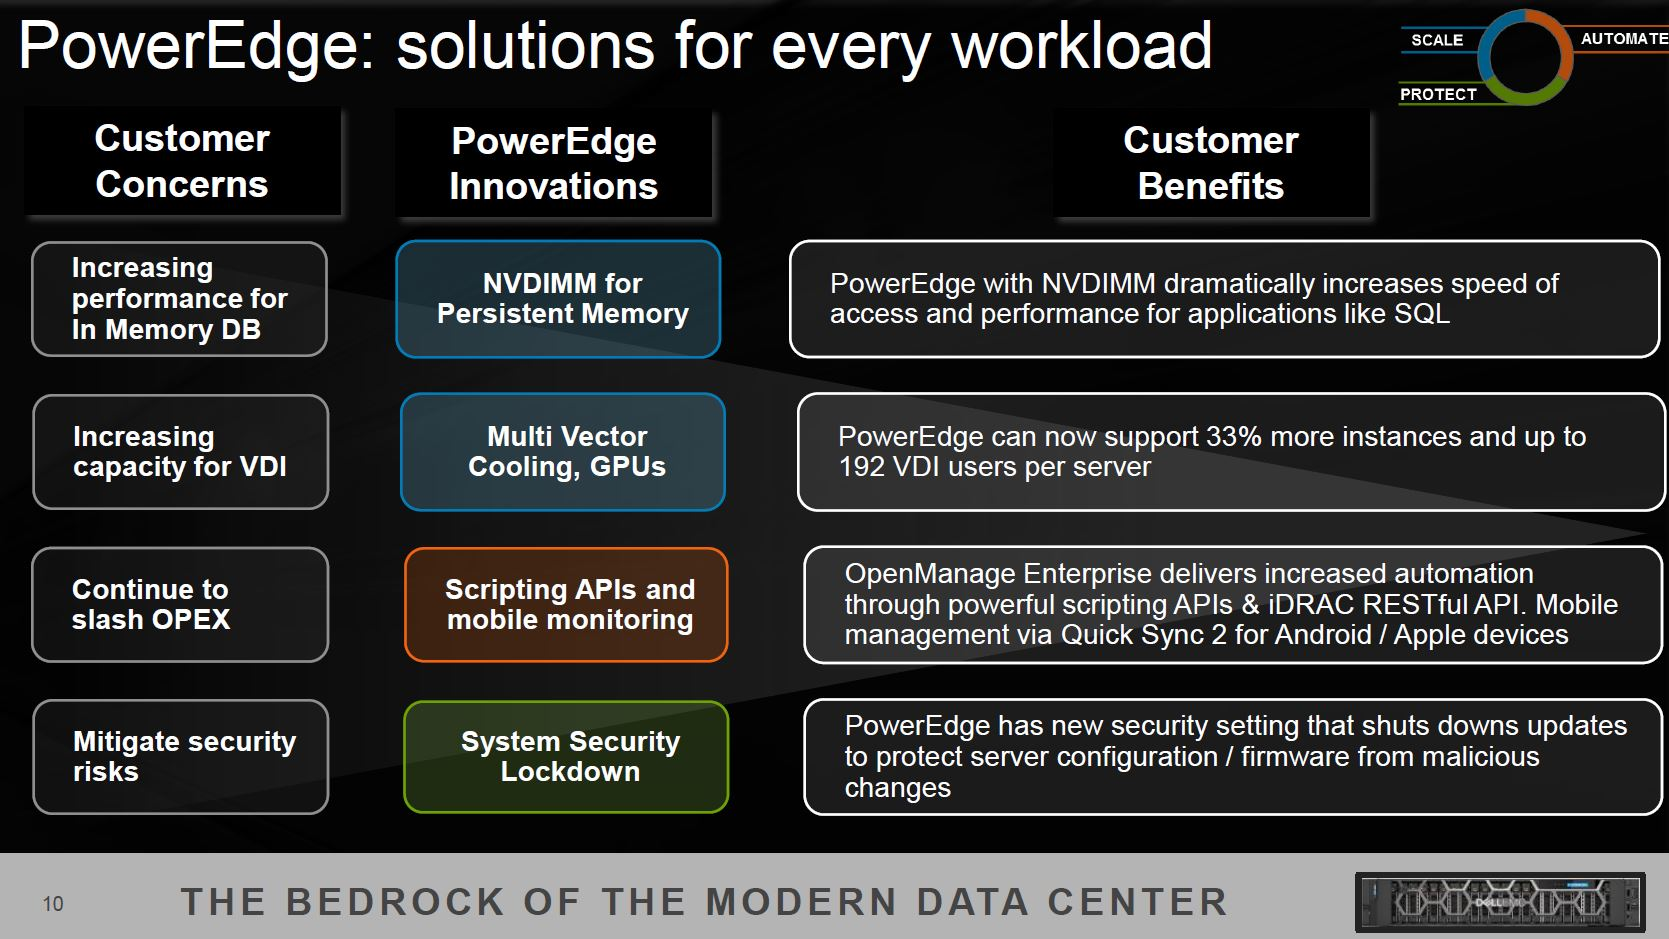 Dell EMC PowerEdge 14th Generation Innovations